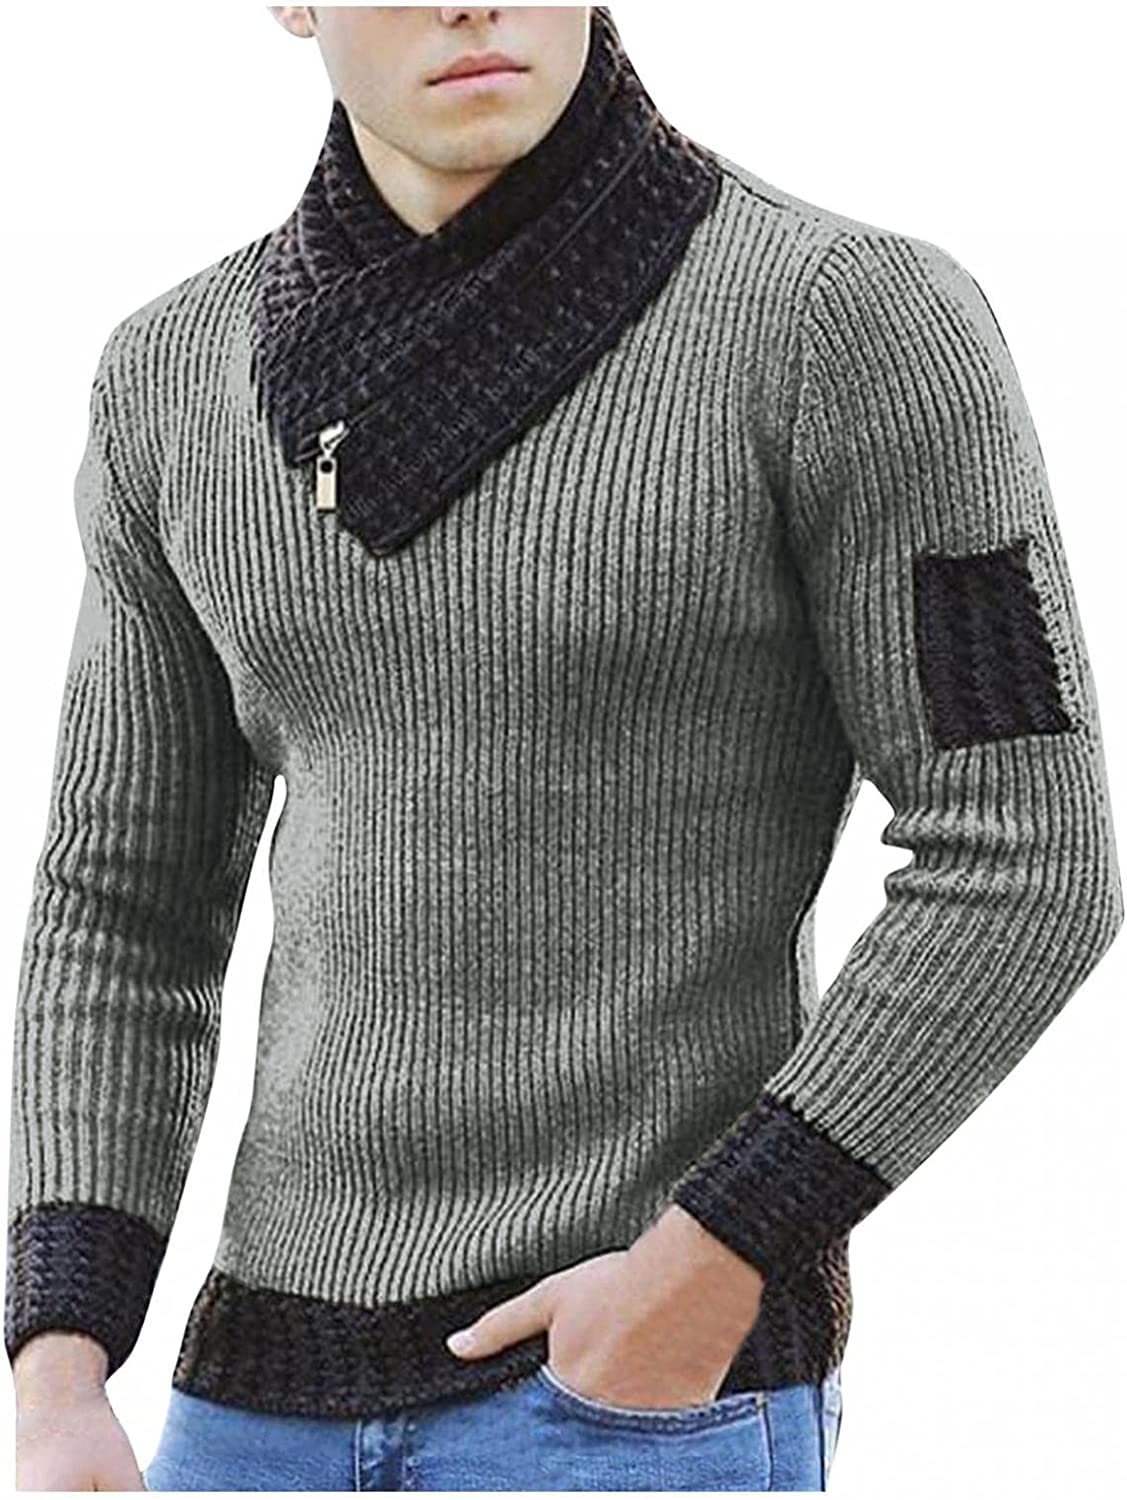 Men Collar Pullover Sweater Long Sleeve Slim Fit Casual Knit Sweaters Solid Color Scarf High Neck Sweatshirt